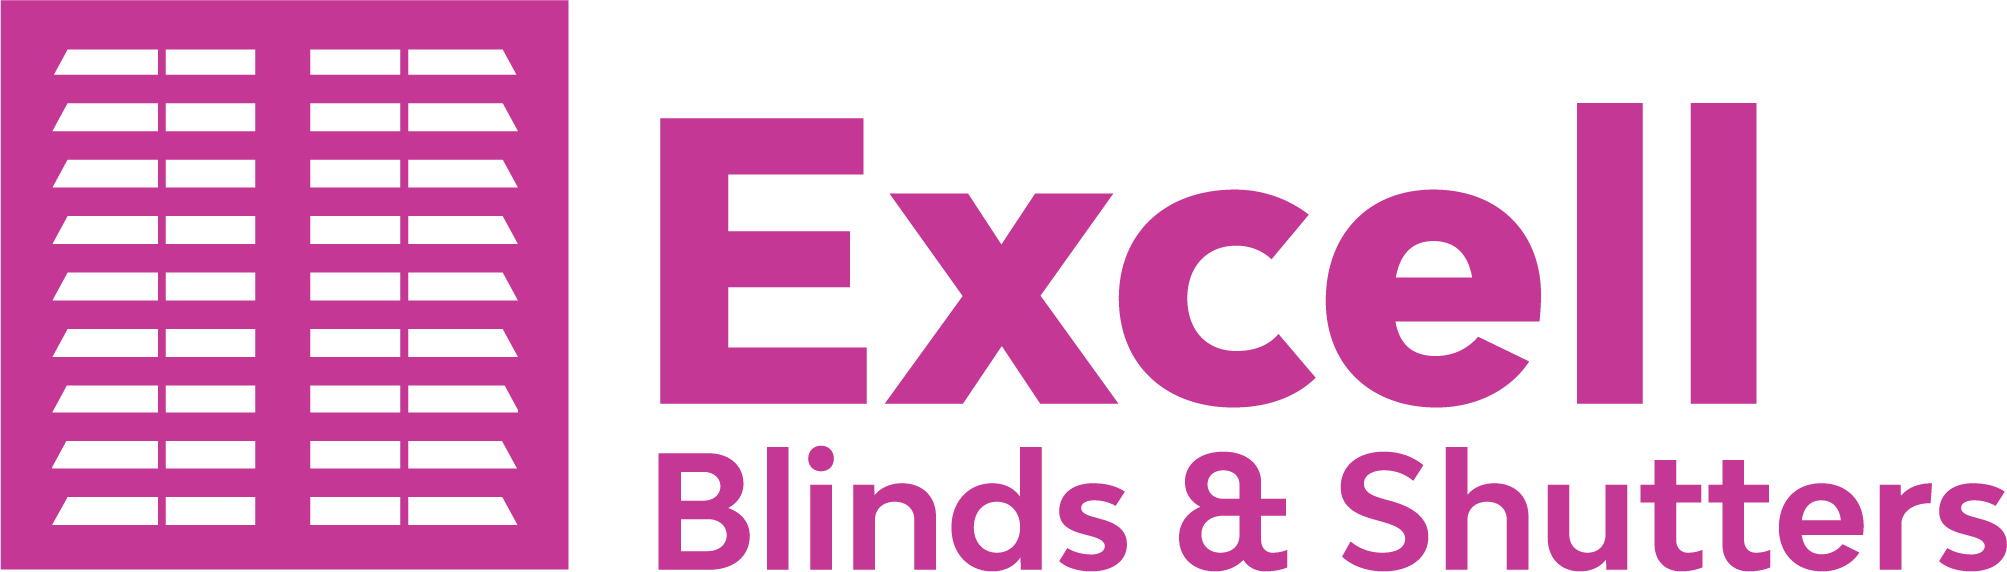 Excell Blnds and Shutters pink logo